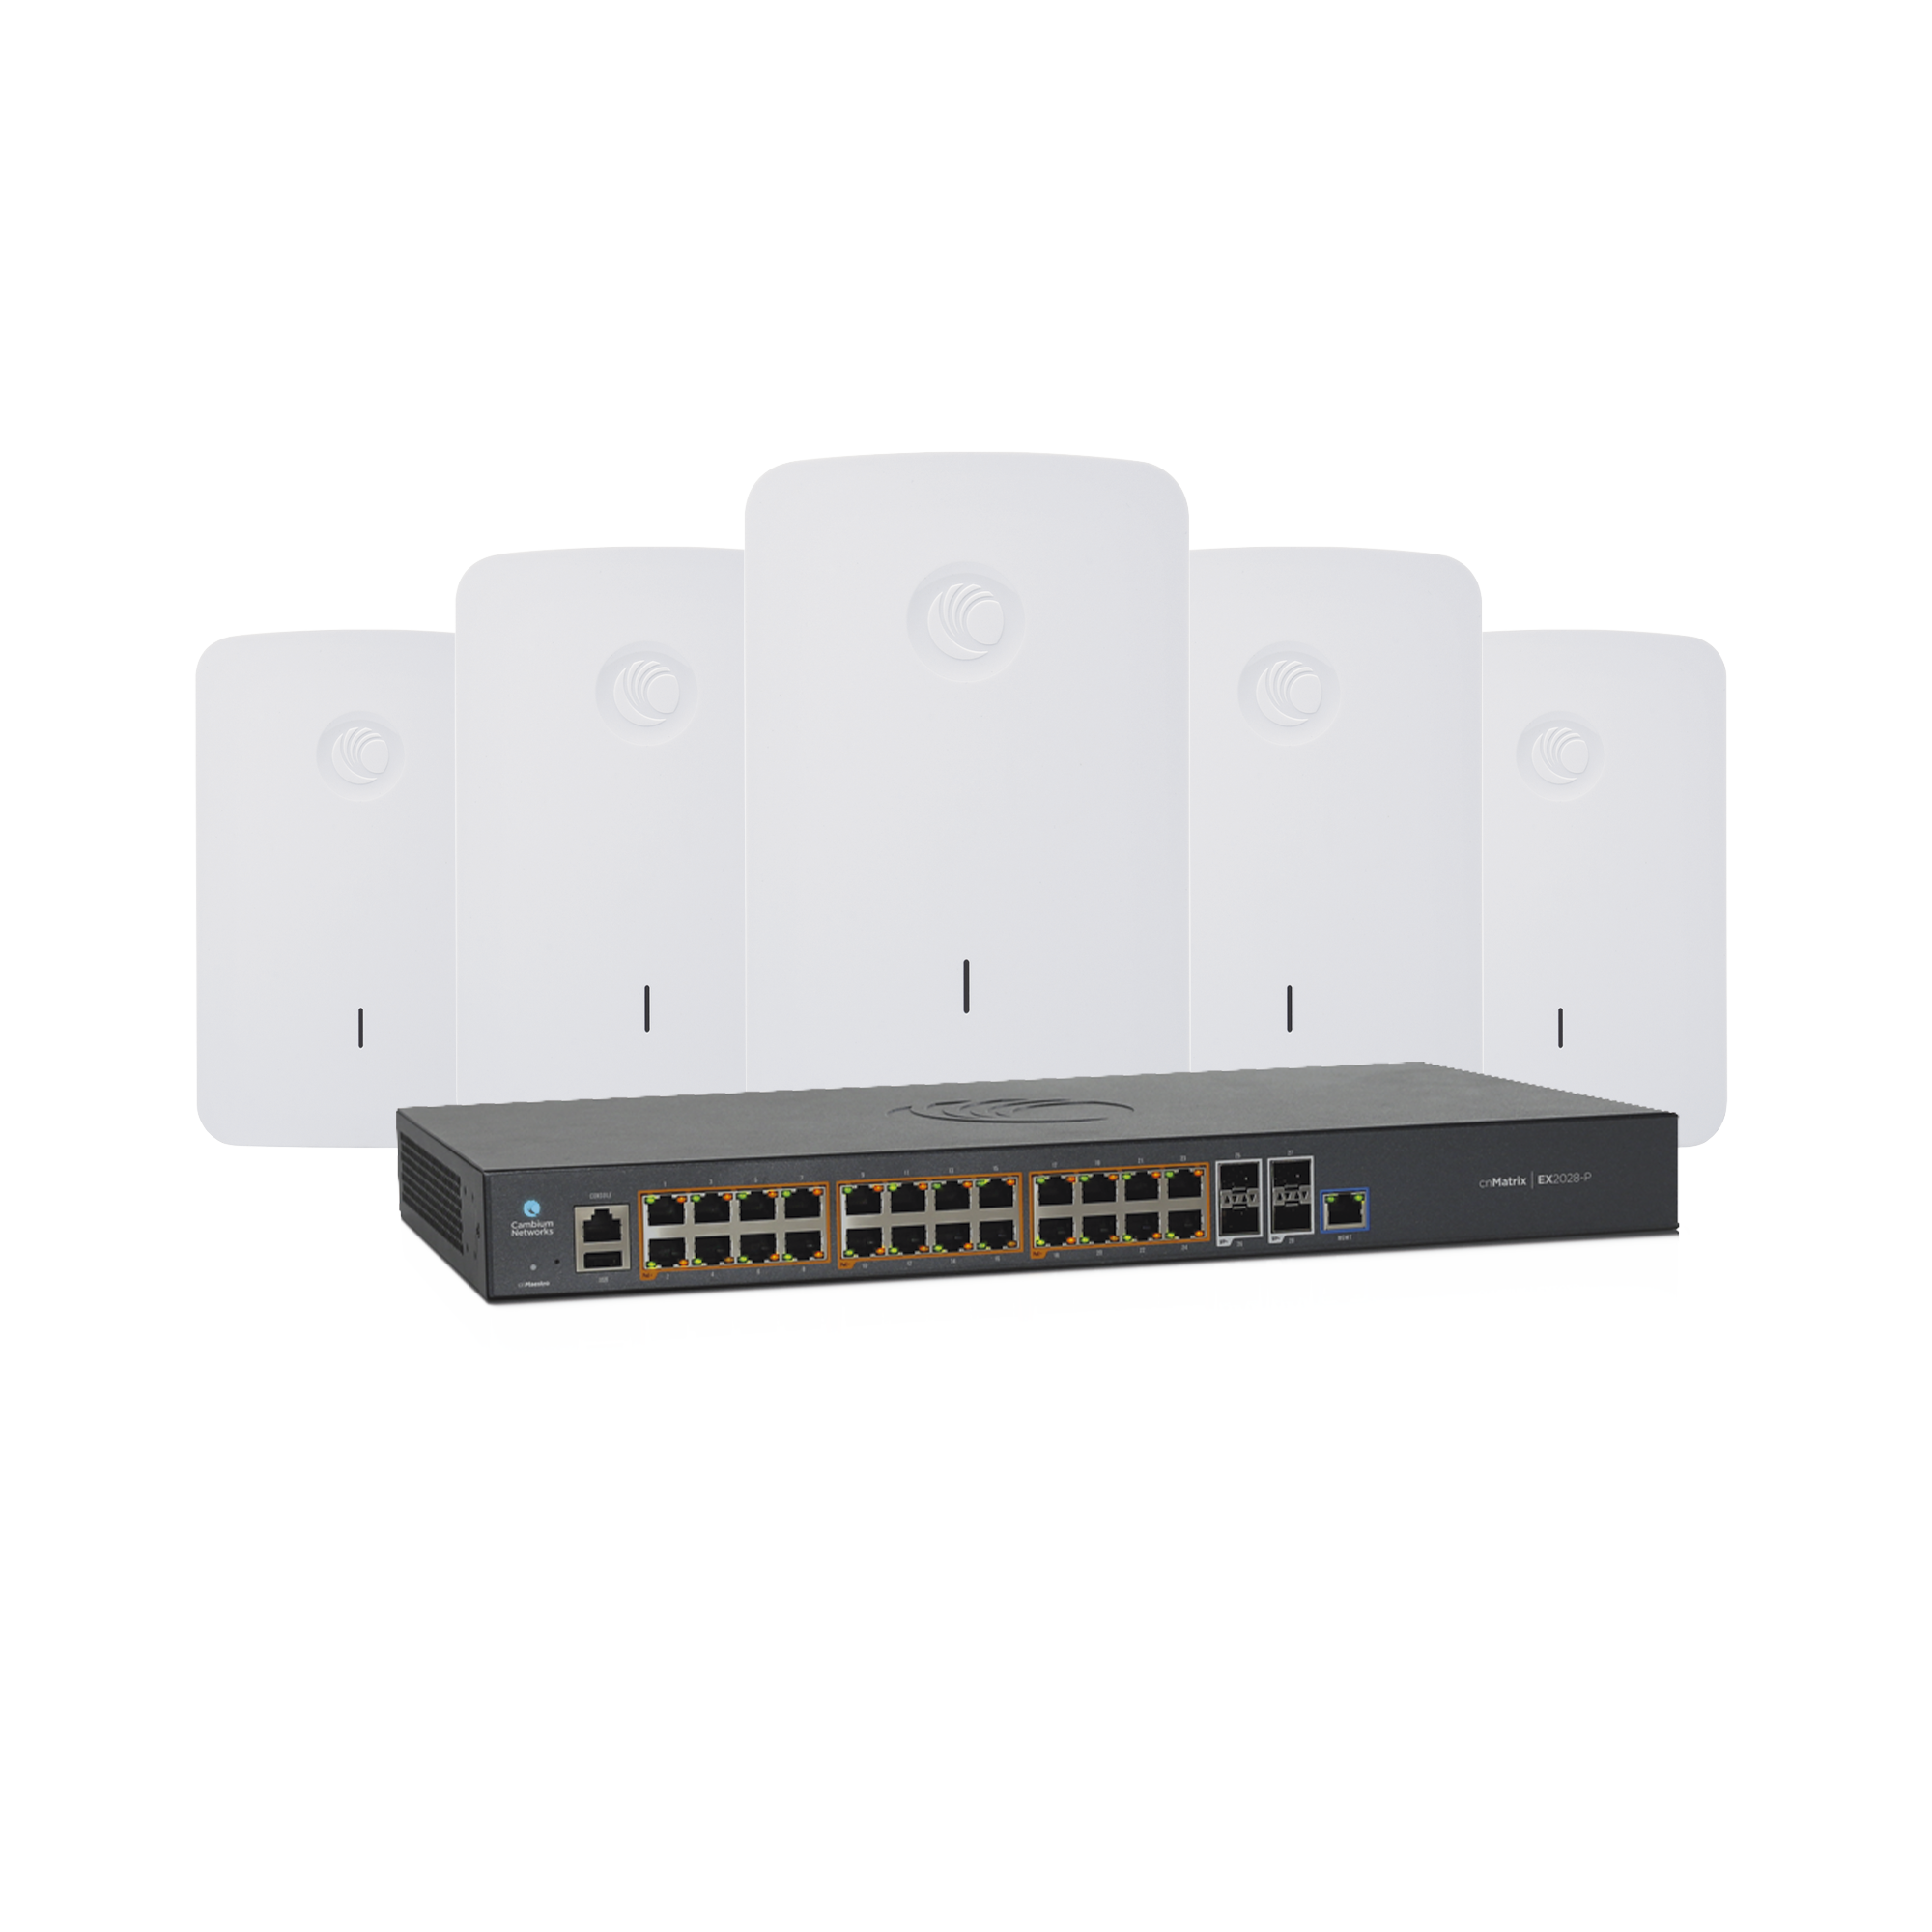 Kit Wi-Fi Empresarial de 5 Access Point e425H y un switch PoE EX2028P